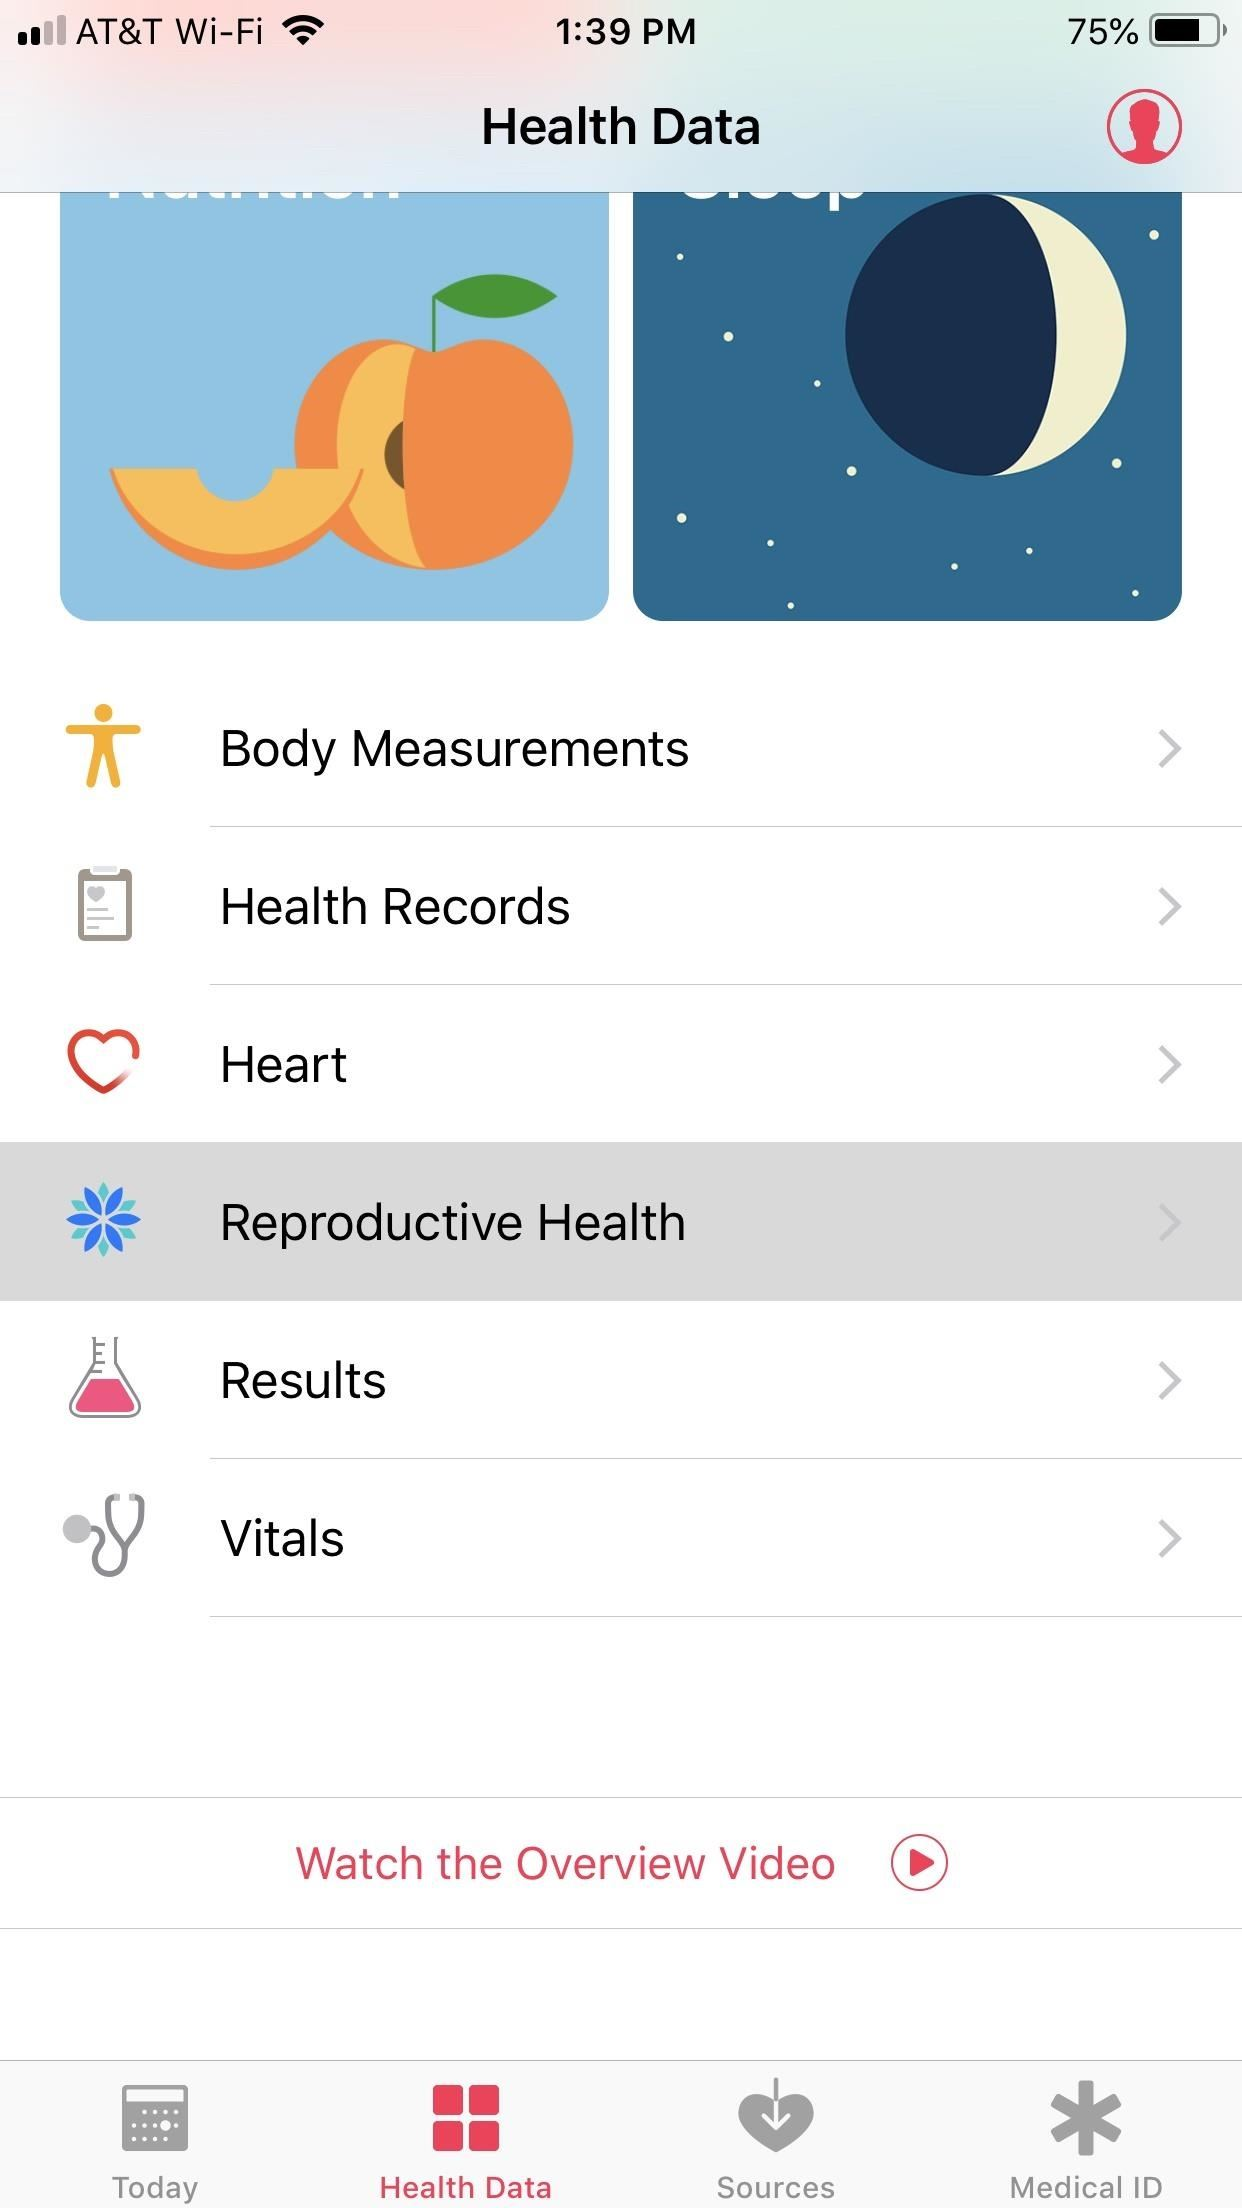 19 tips on how to make the most of it The Health App on Your iPhone